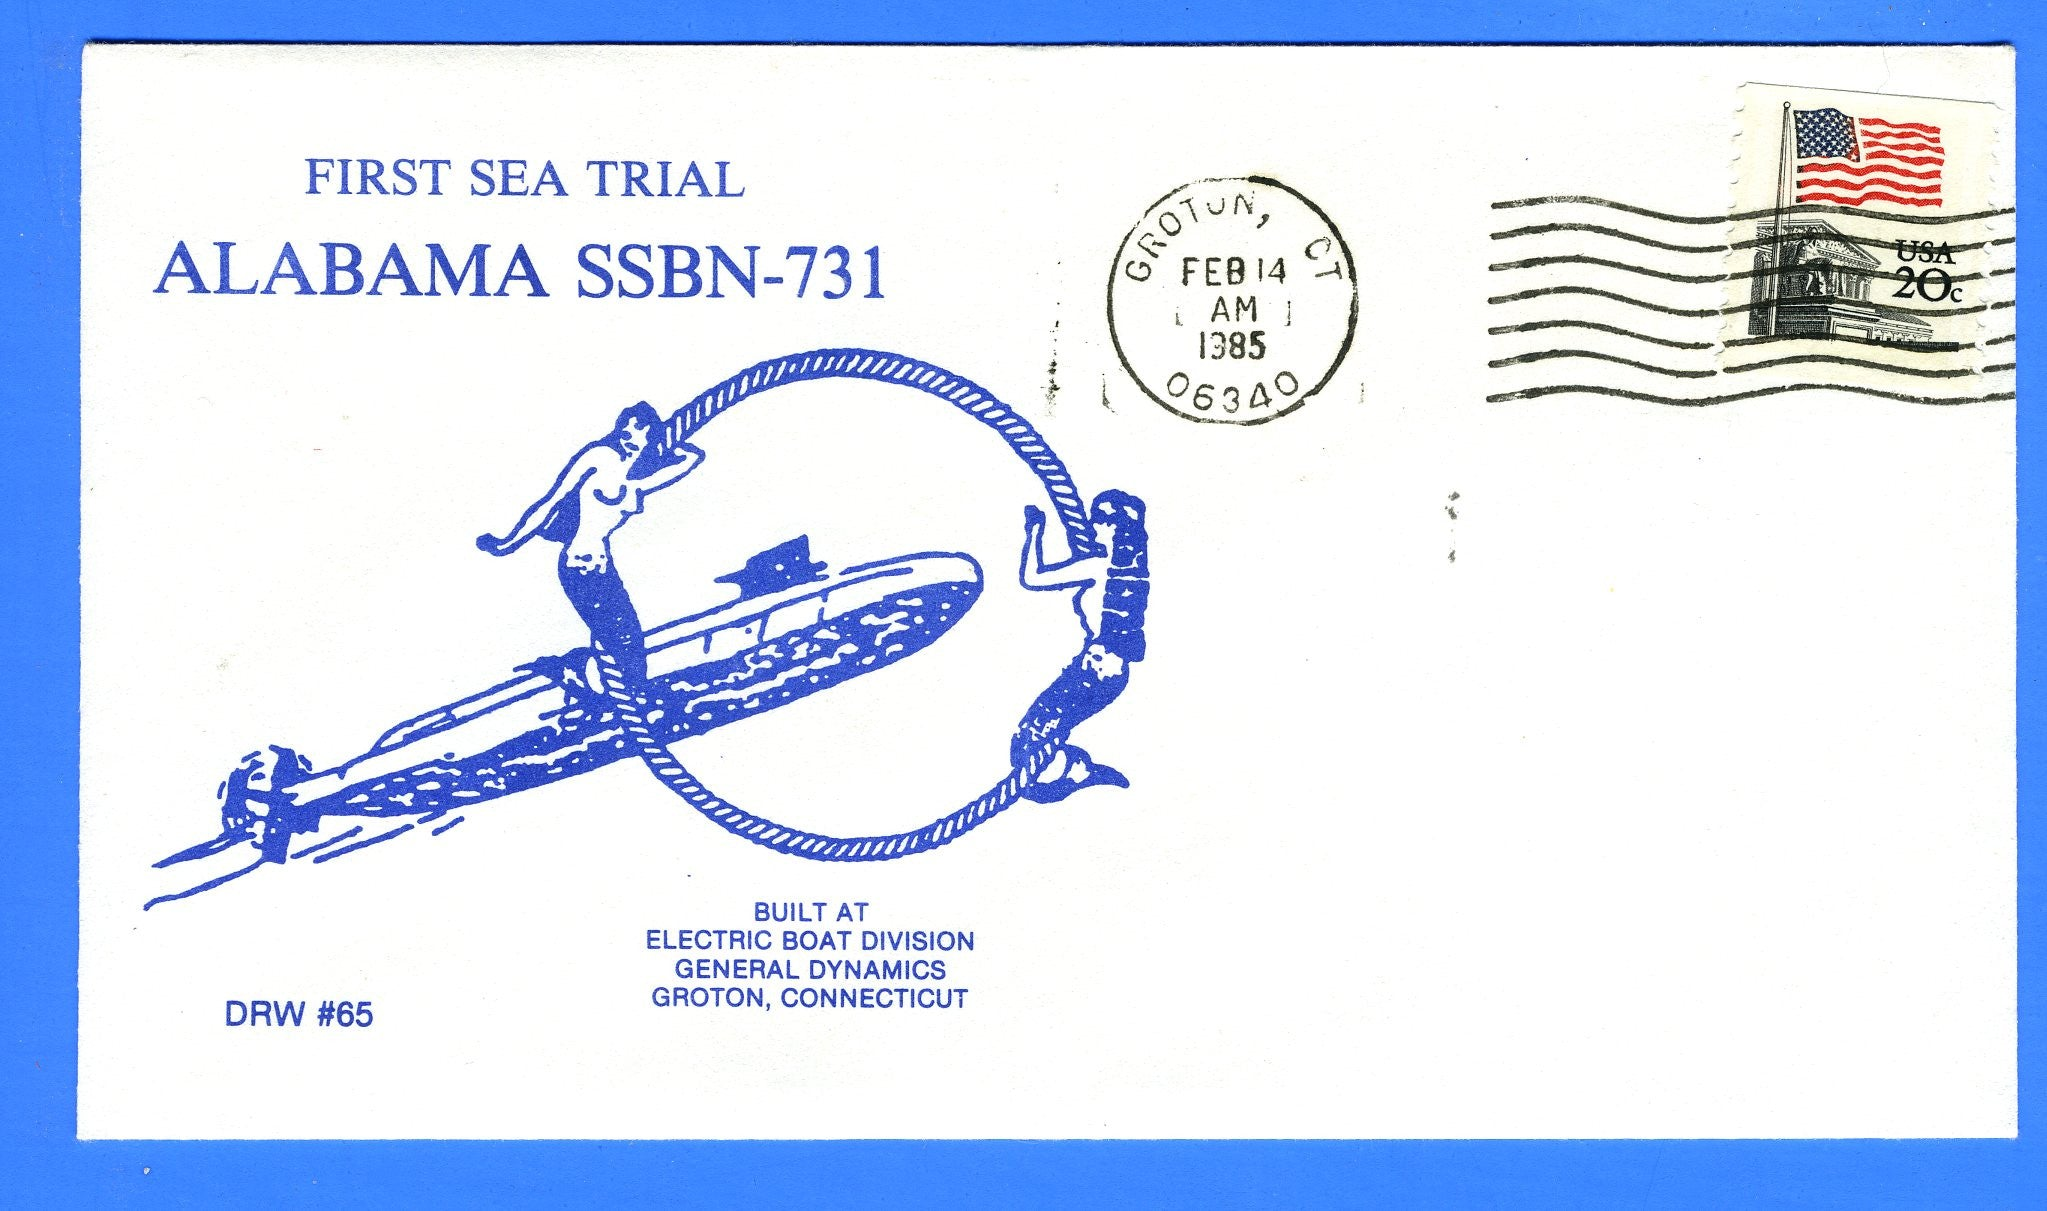 USS Alabama SSBN-731 First Sea Trial Feb 14, 1985 - DRW 65